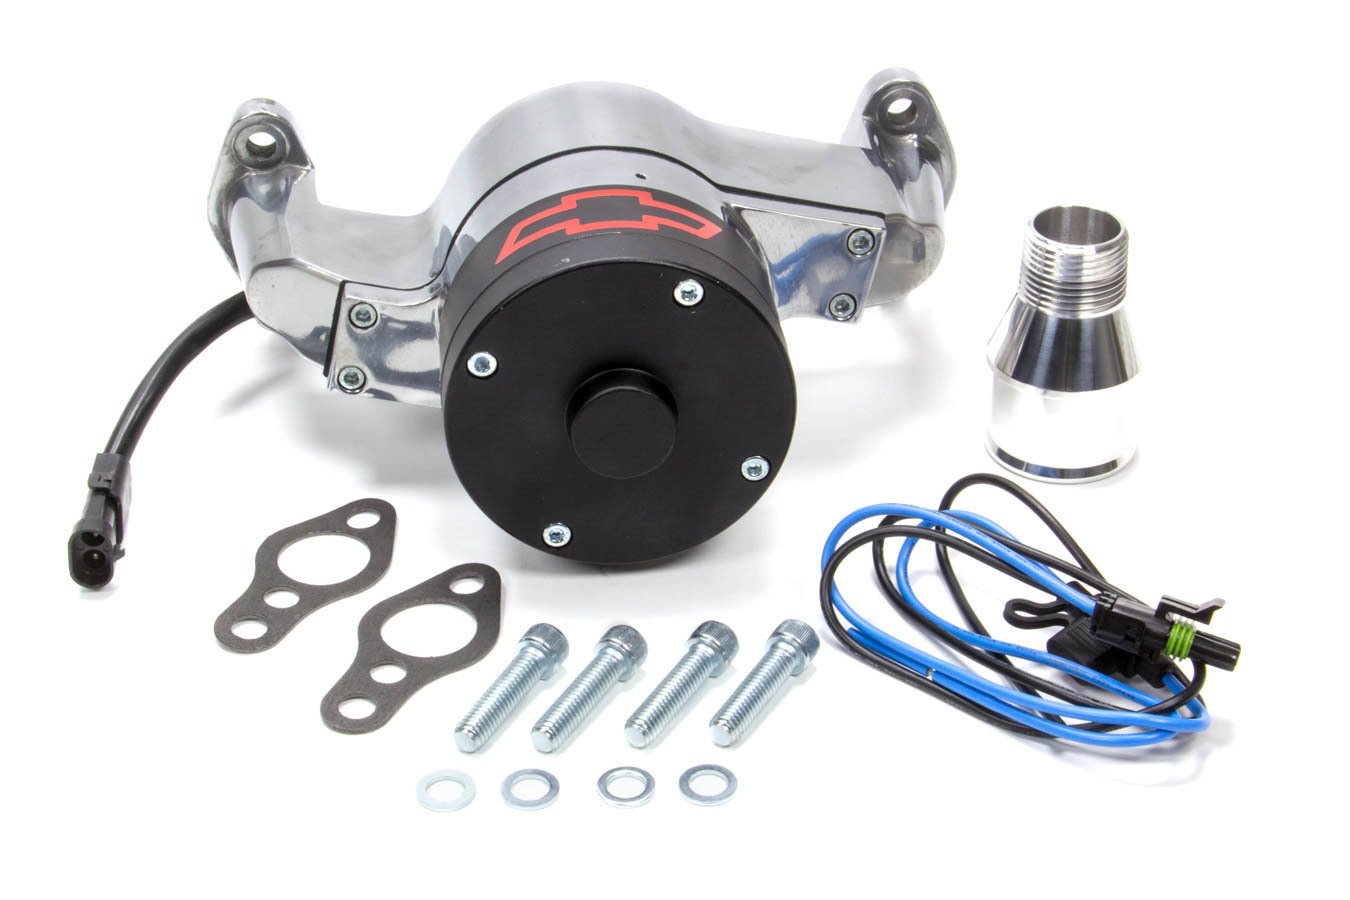 Proform 141-654 Water Pump, Electric, 1 in NPT Female Inlet, Adapter / Gaskets / Hardware, Bowtie Logo, Billet Aluminum, Polished, Small Block Chevy, Kit